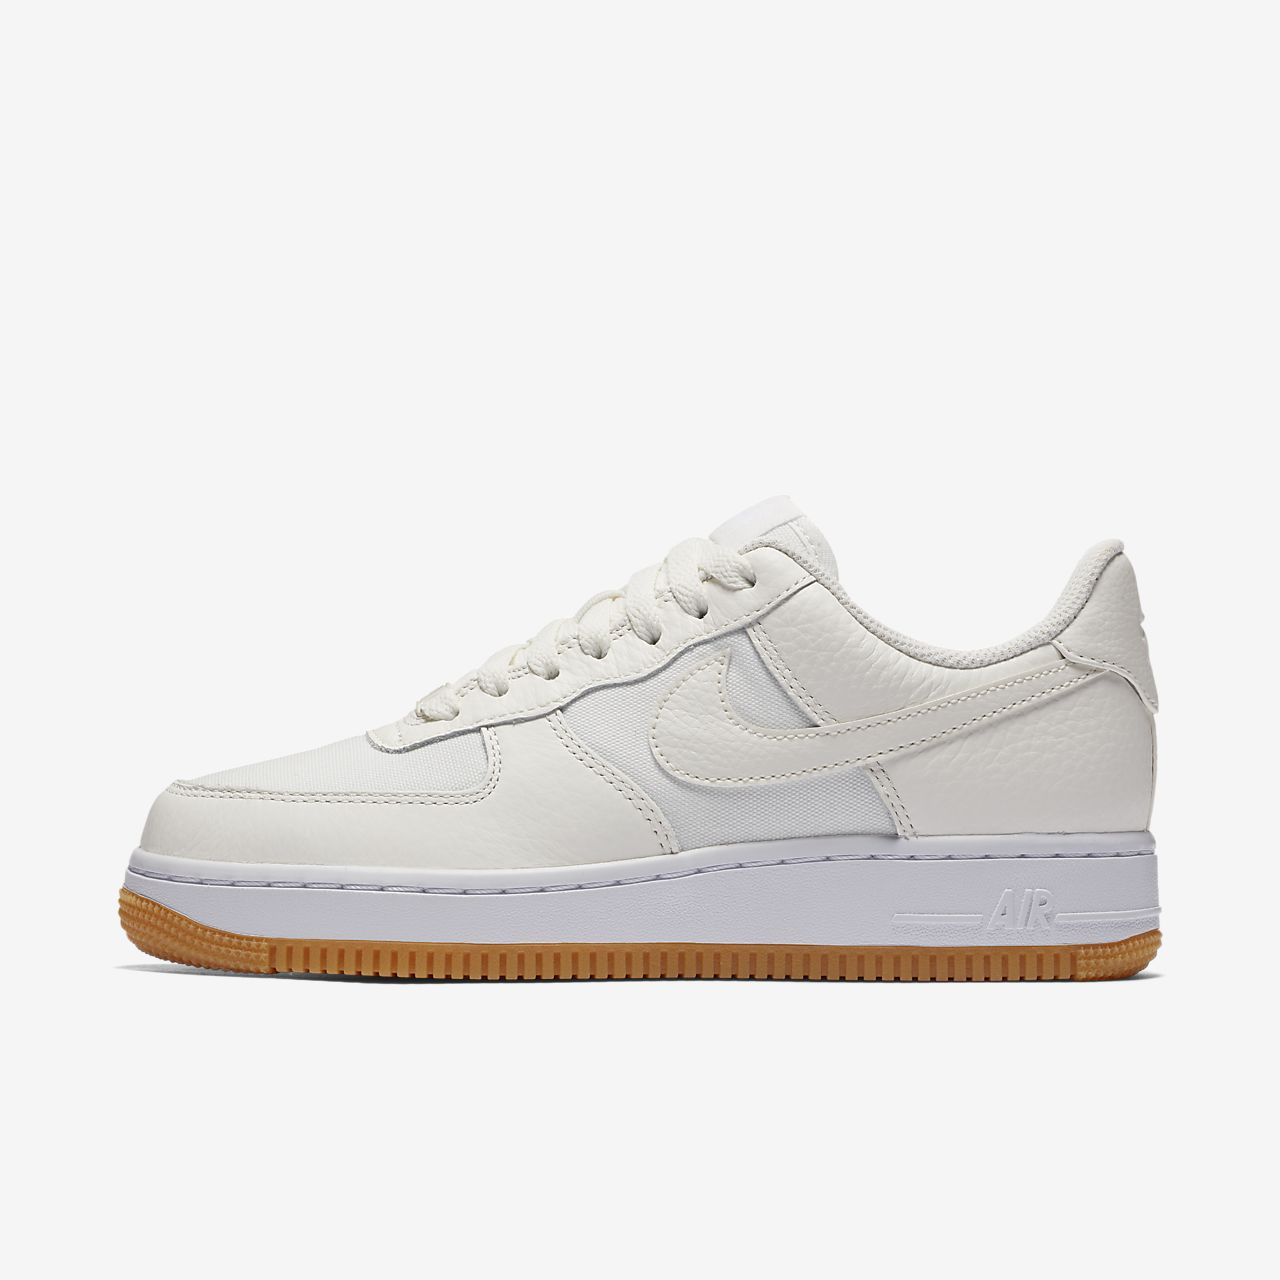 buty nike air force 1 low flyknit kolorowe